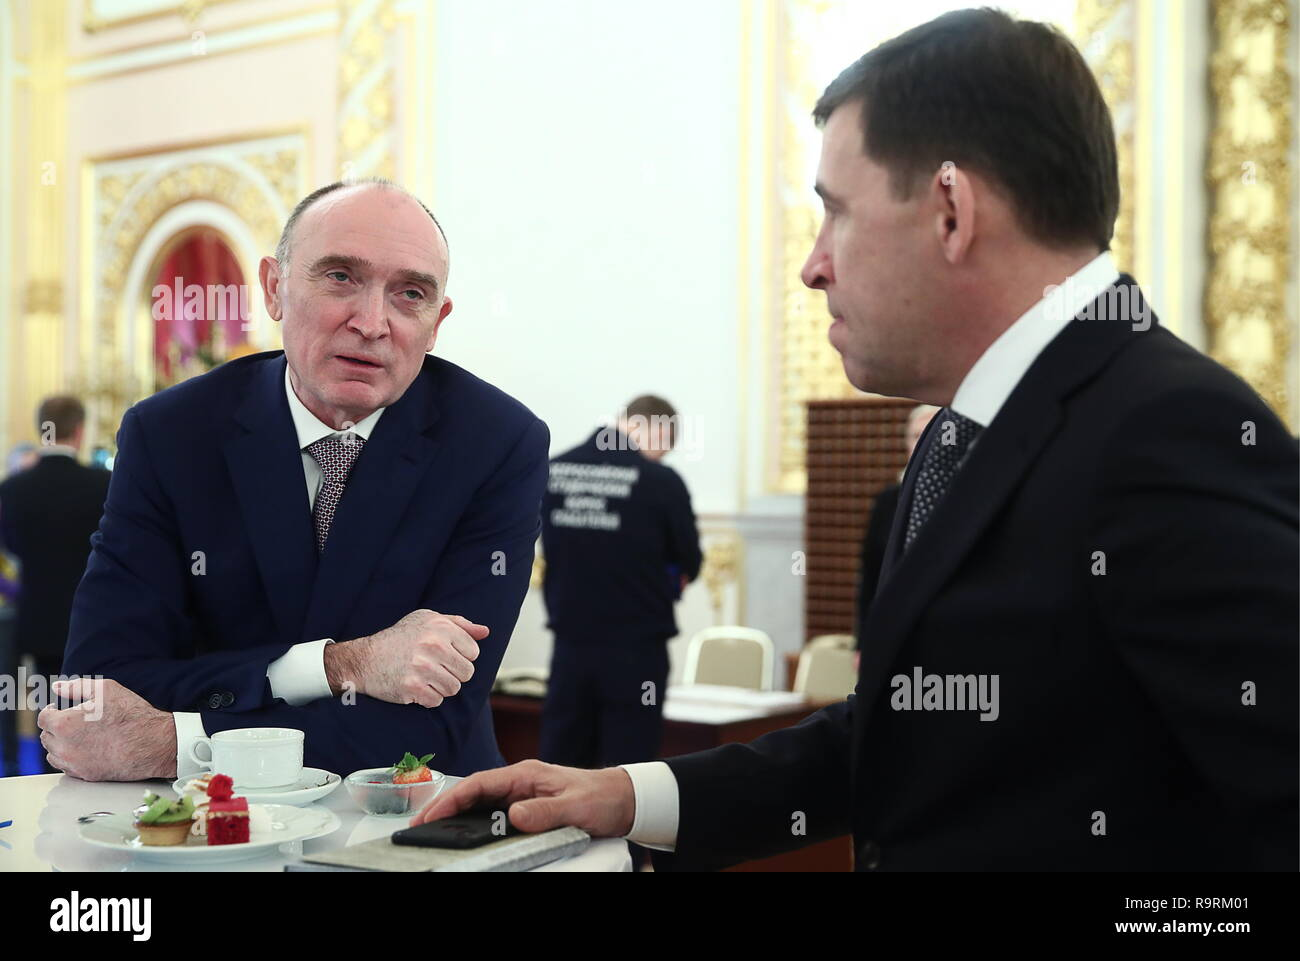 Moscow, Russia. 27th Dec, 2018. MOSCOW, RUSSIA - DECEMBER 27, 2018: Russia's Chelyabinsk Region Governor Boris Dubrovsky (L) and Sverdlovsk Region Governor Yevgeny Kuivashev at a State Council meeting on the development of volunteering and socially oriented NGOs, at the Moscow Kremlin. Dmitry Astakhov/Russian Government Press Office/TASS Credit: ITAR-TASS News Agency/Alamy Live News - Stock Image